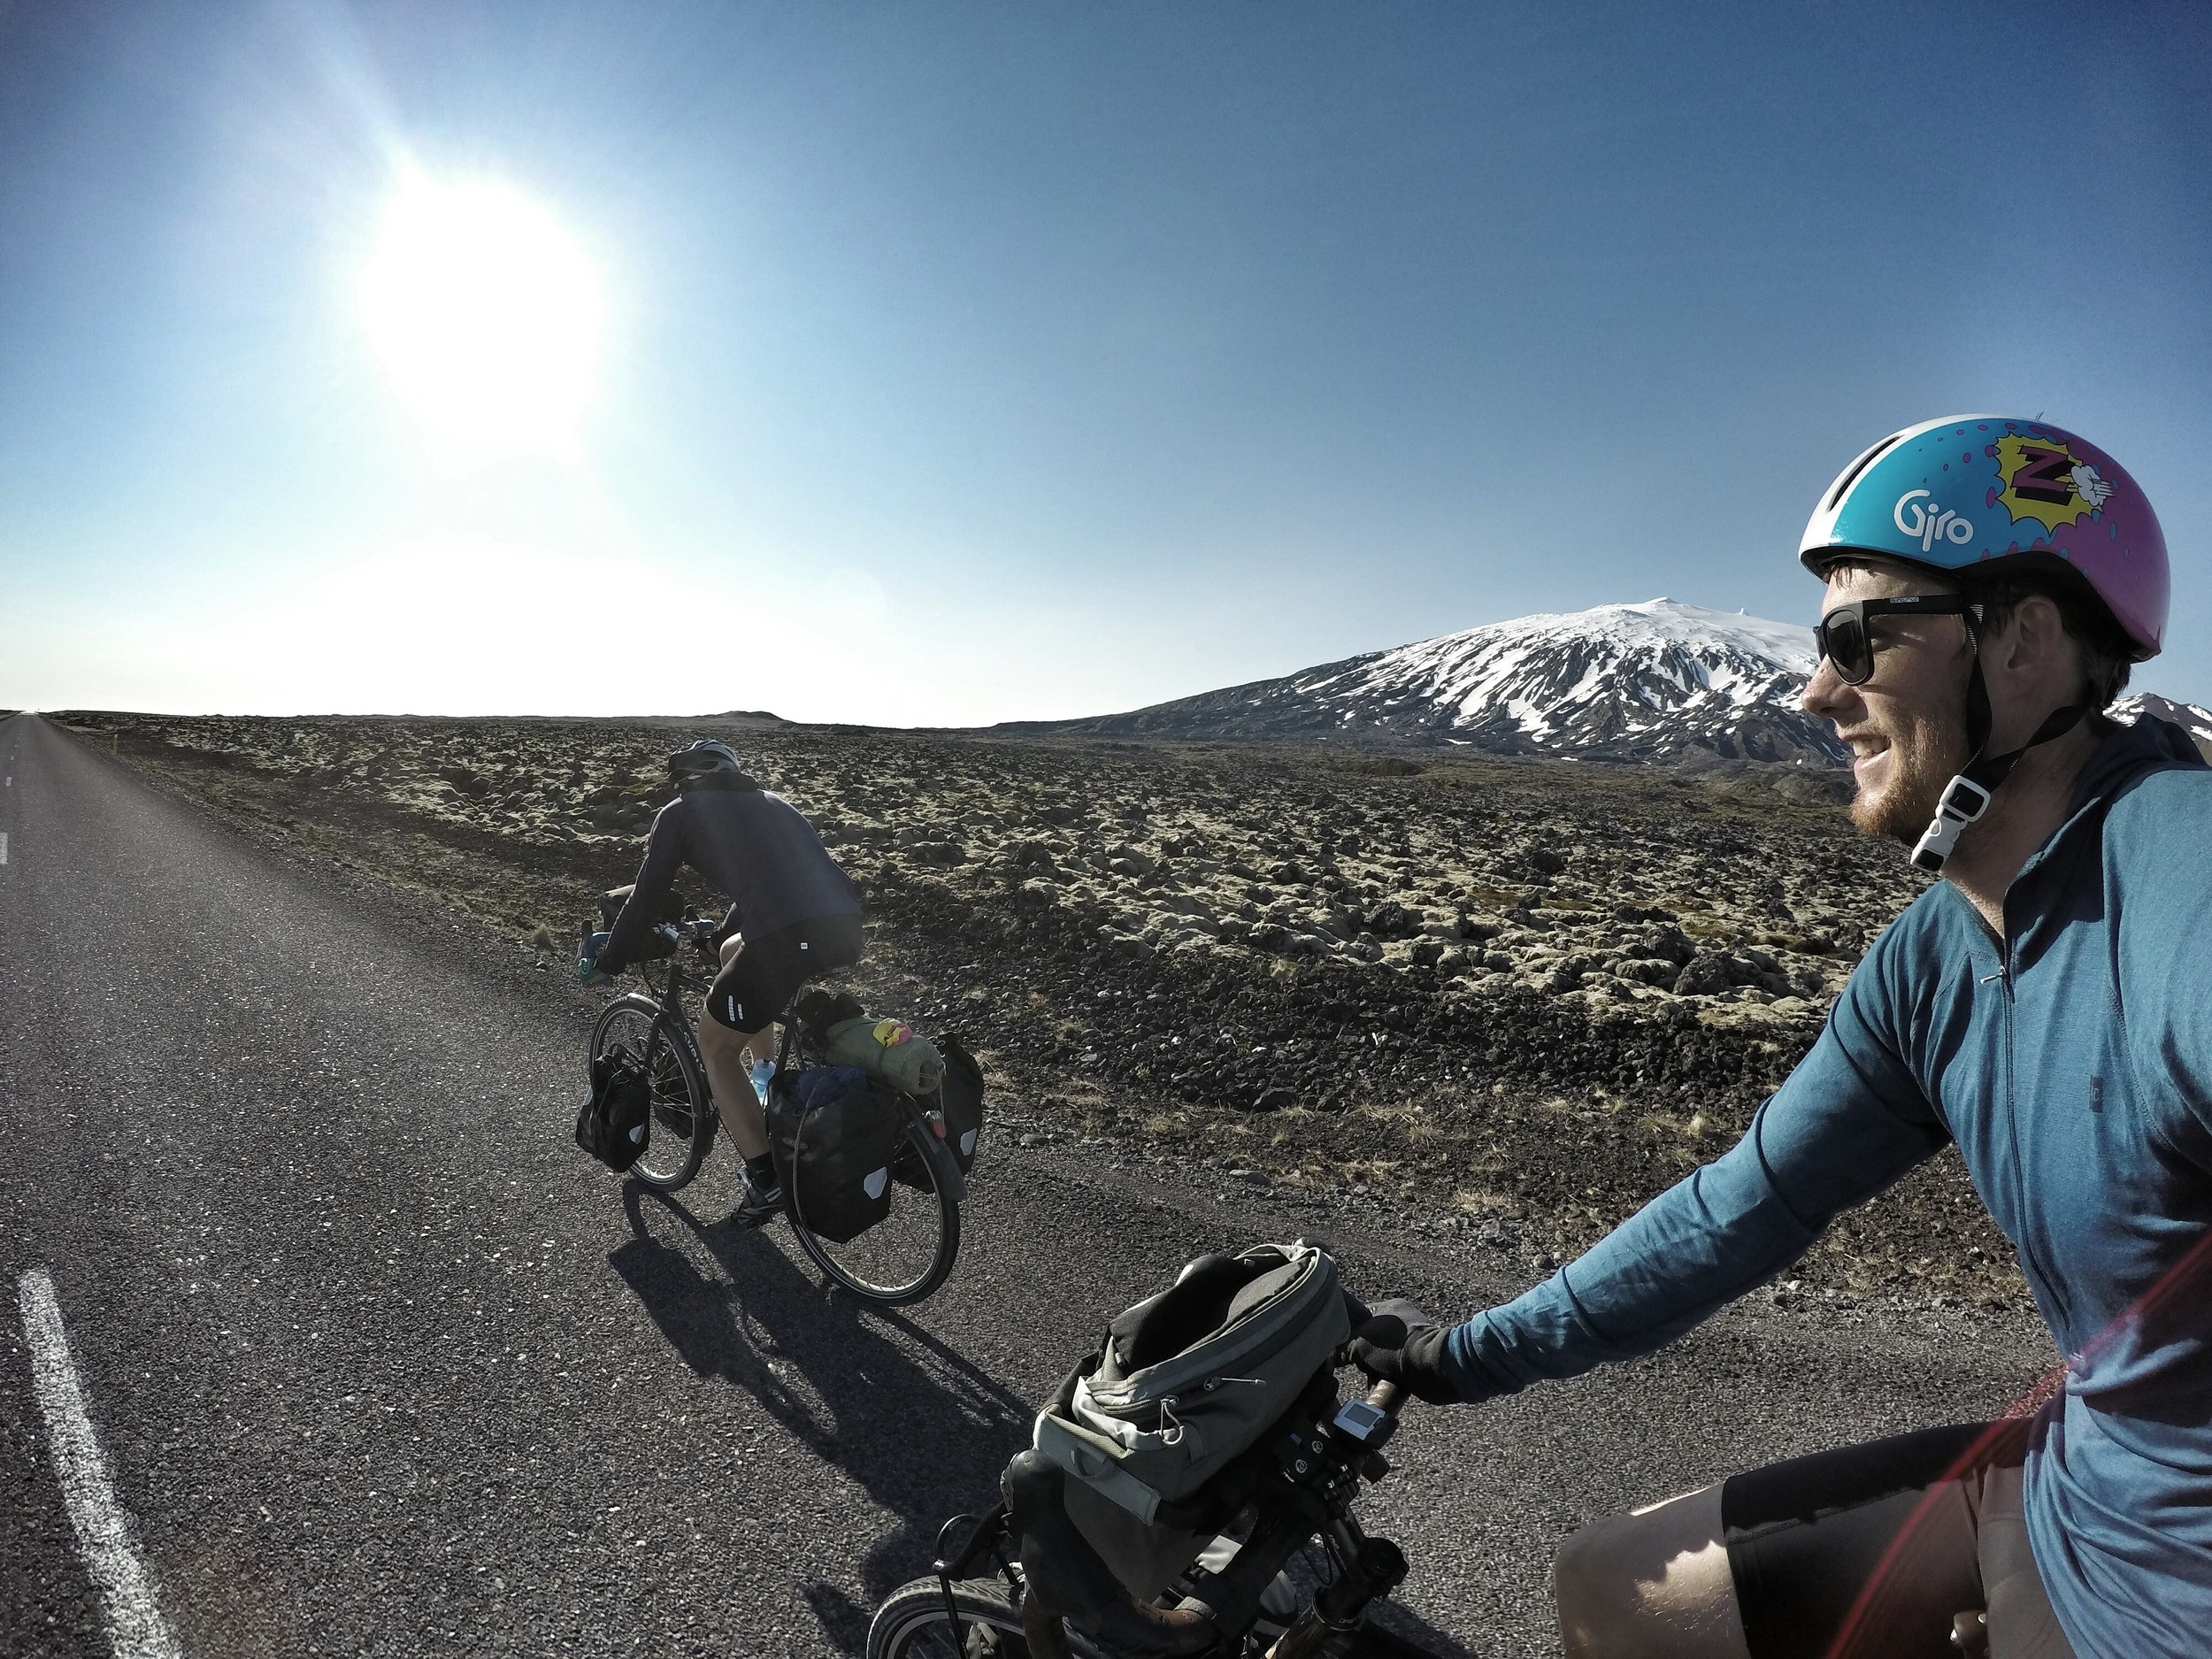 I'm smiling here because of what we just tried to do. Instead of going around the volcano, Snæfellsjökull, shown in background, we tried going over it. We went up the steepest gravel mountain pass road you could dream of with a loaded touring bicycle and on the hottest day of the trip. We started cycling past deep snow on either side of the road, and then pushed our bikes through it. Eventually we got totally denied by kilometers of deep snow over the road. We then had to travel back another 8km to start our 40km windy detour, seen here. Next time I cycle past snowmobilers, I'll take it as a sign of inevitable cycling doom. This volcano is the mountain depicted in Jules Verne's 1864 novel 'Journey to the Centre of the Earth', so if you want to head into the earth, you can find the door somewhere up there.